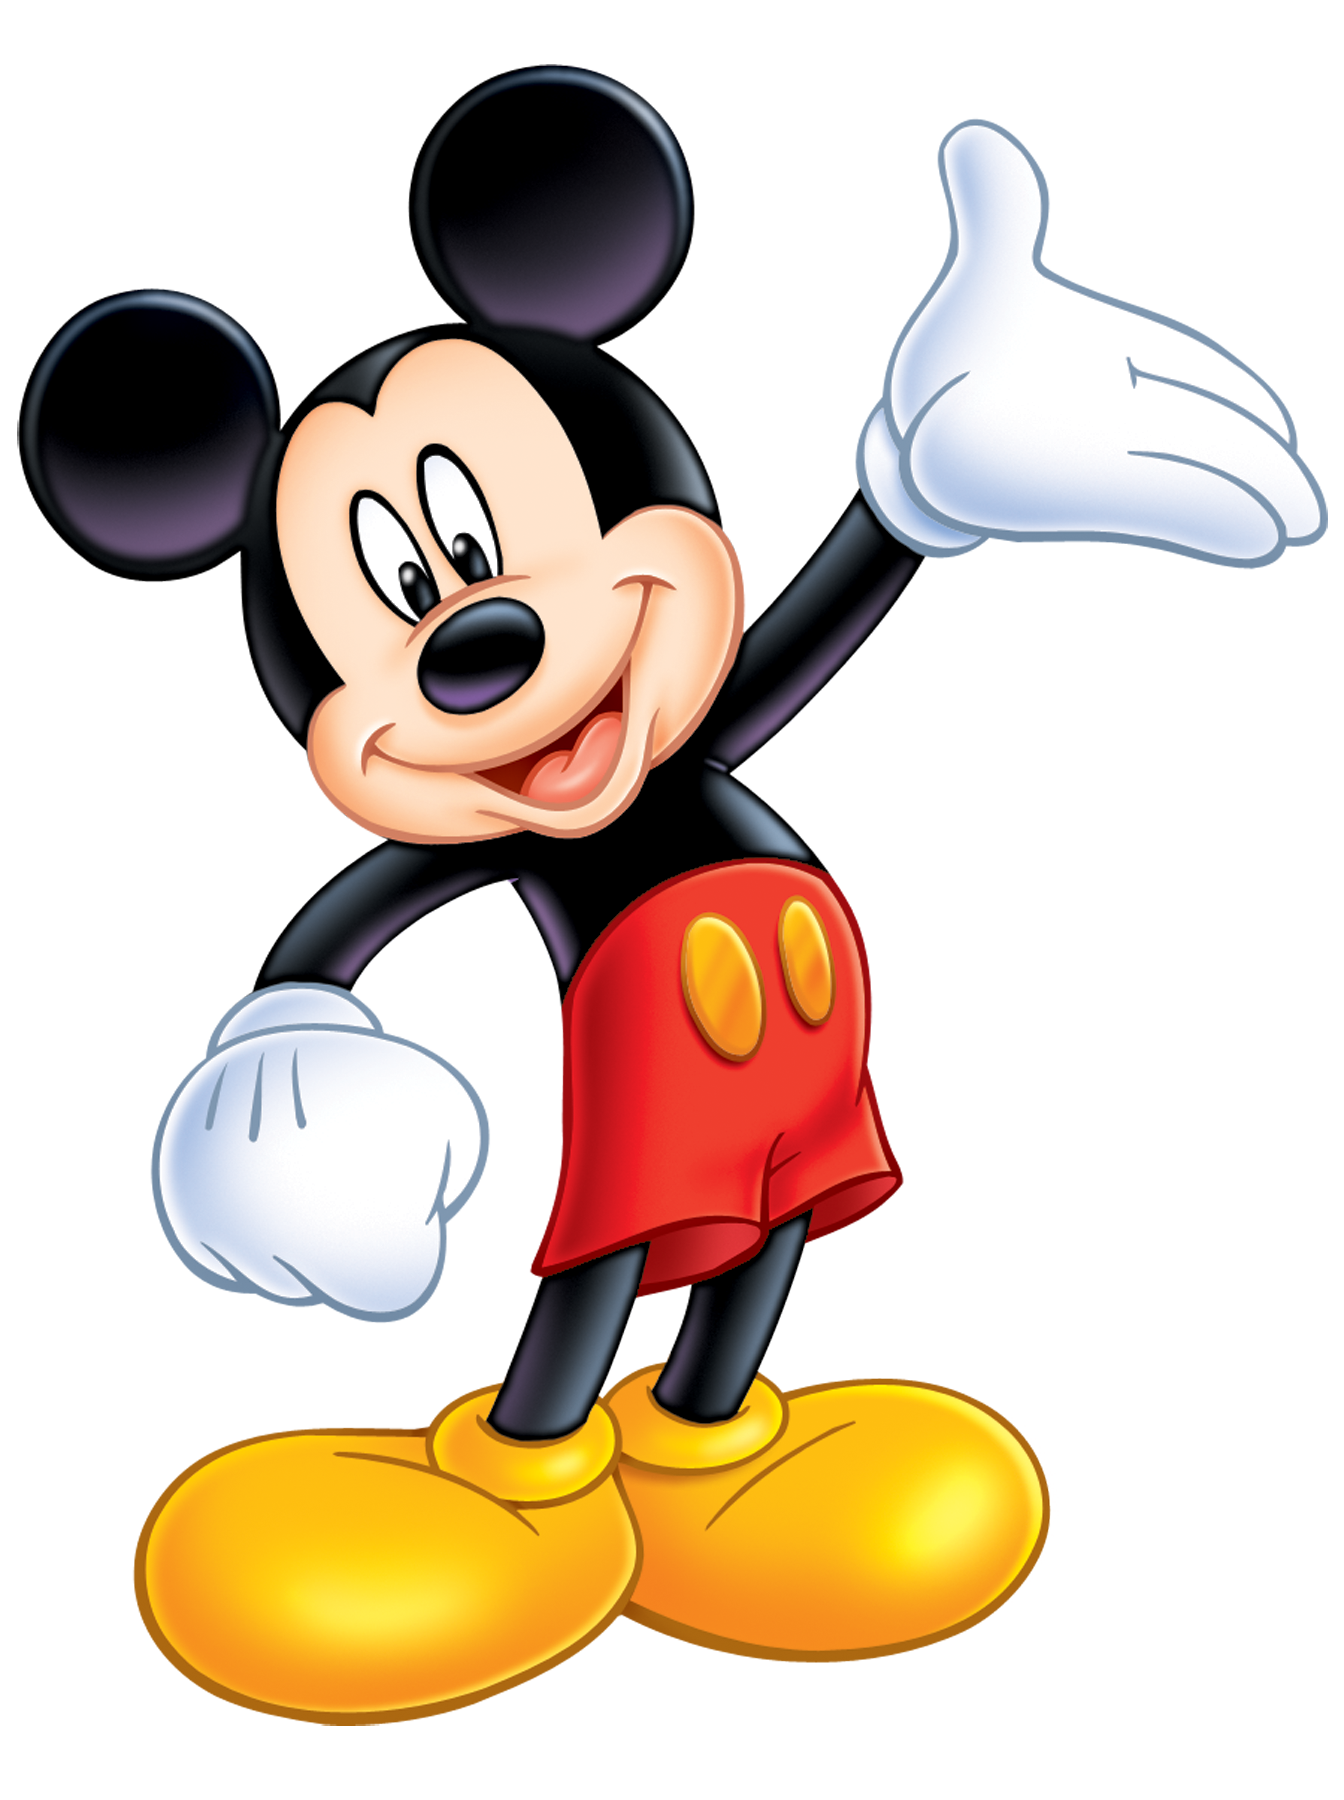 Mickey mouse peeking png. The legend icon my